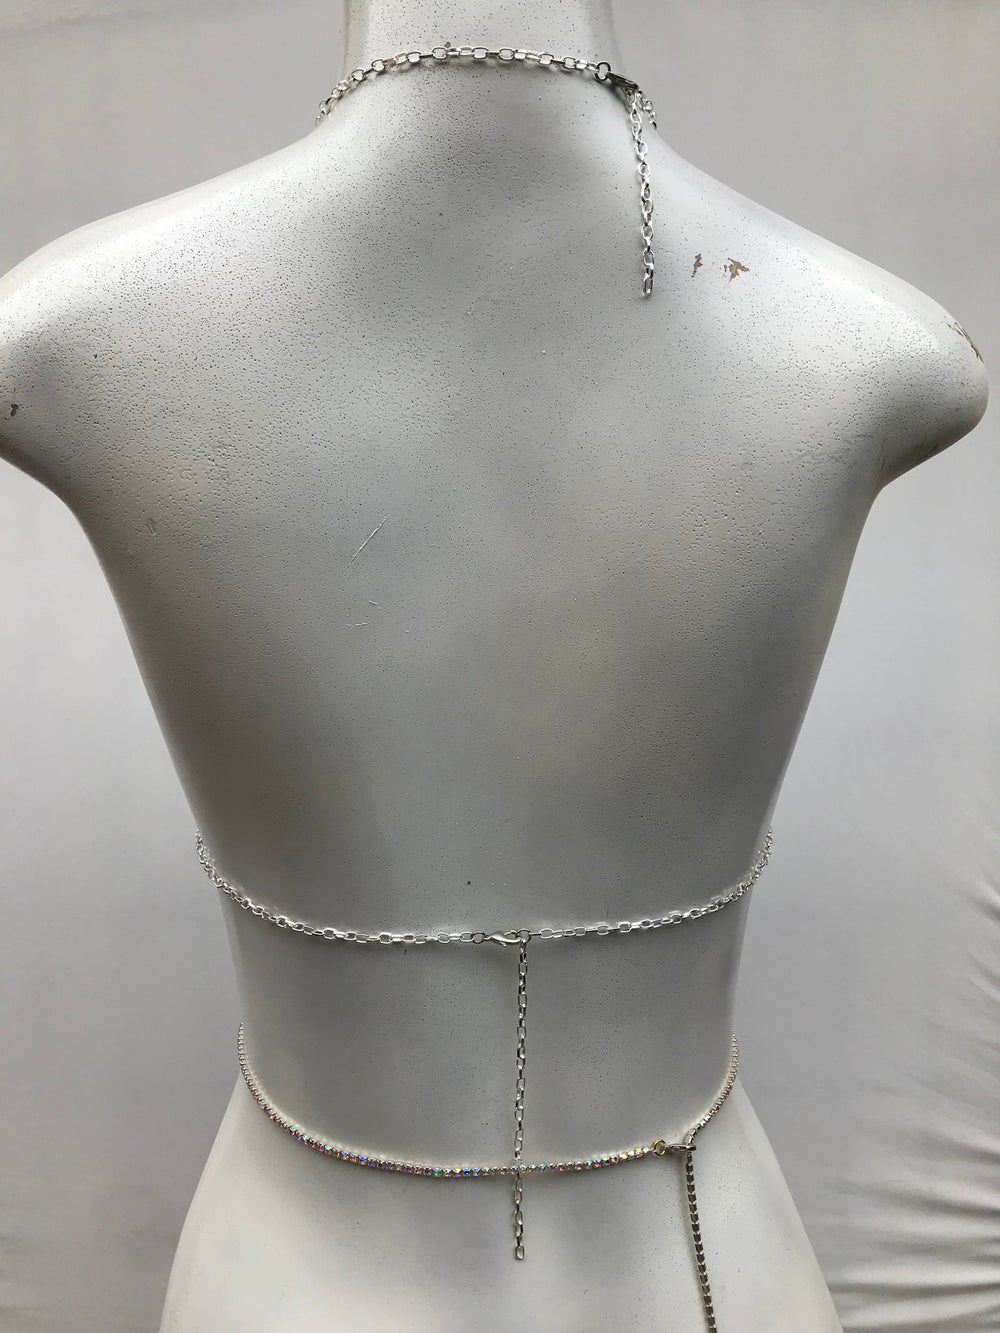 Image of Crystal halter crop top, festival body jewelry